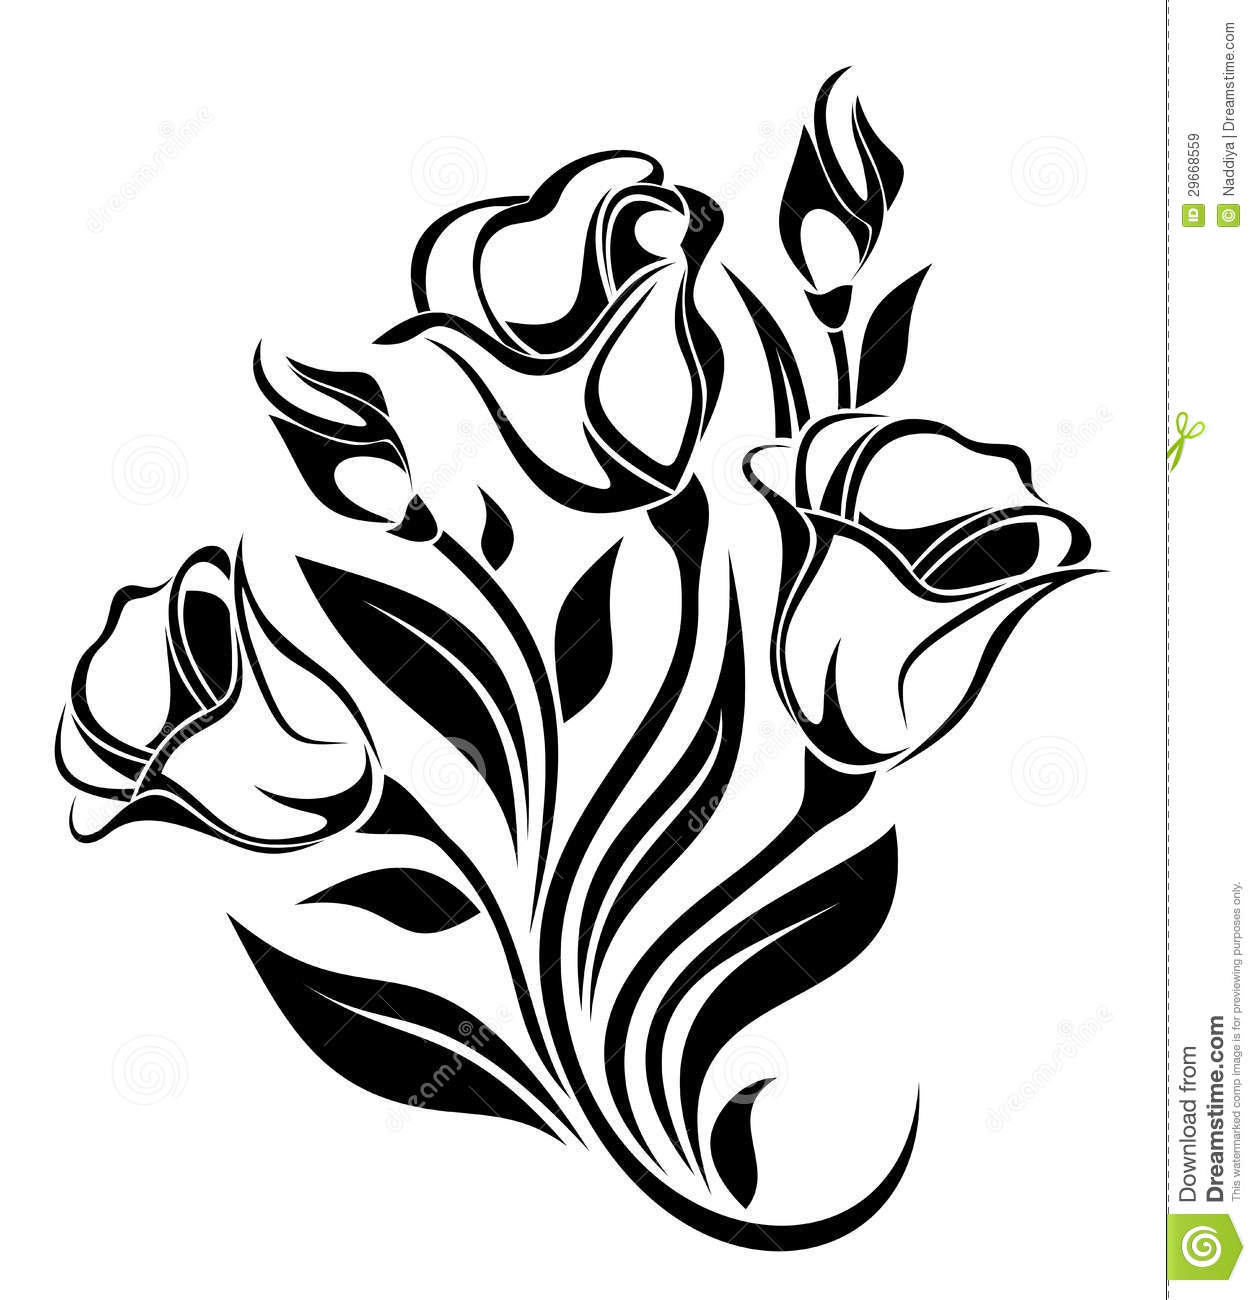 Black Flower Silhouette Pattern Royalty Free Stock Images: Black Silhouette Of Flowers Ornament. Vector. Royalty Free